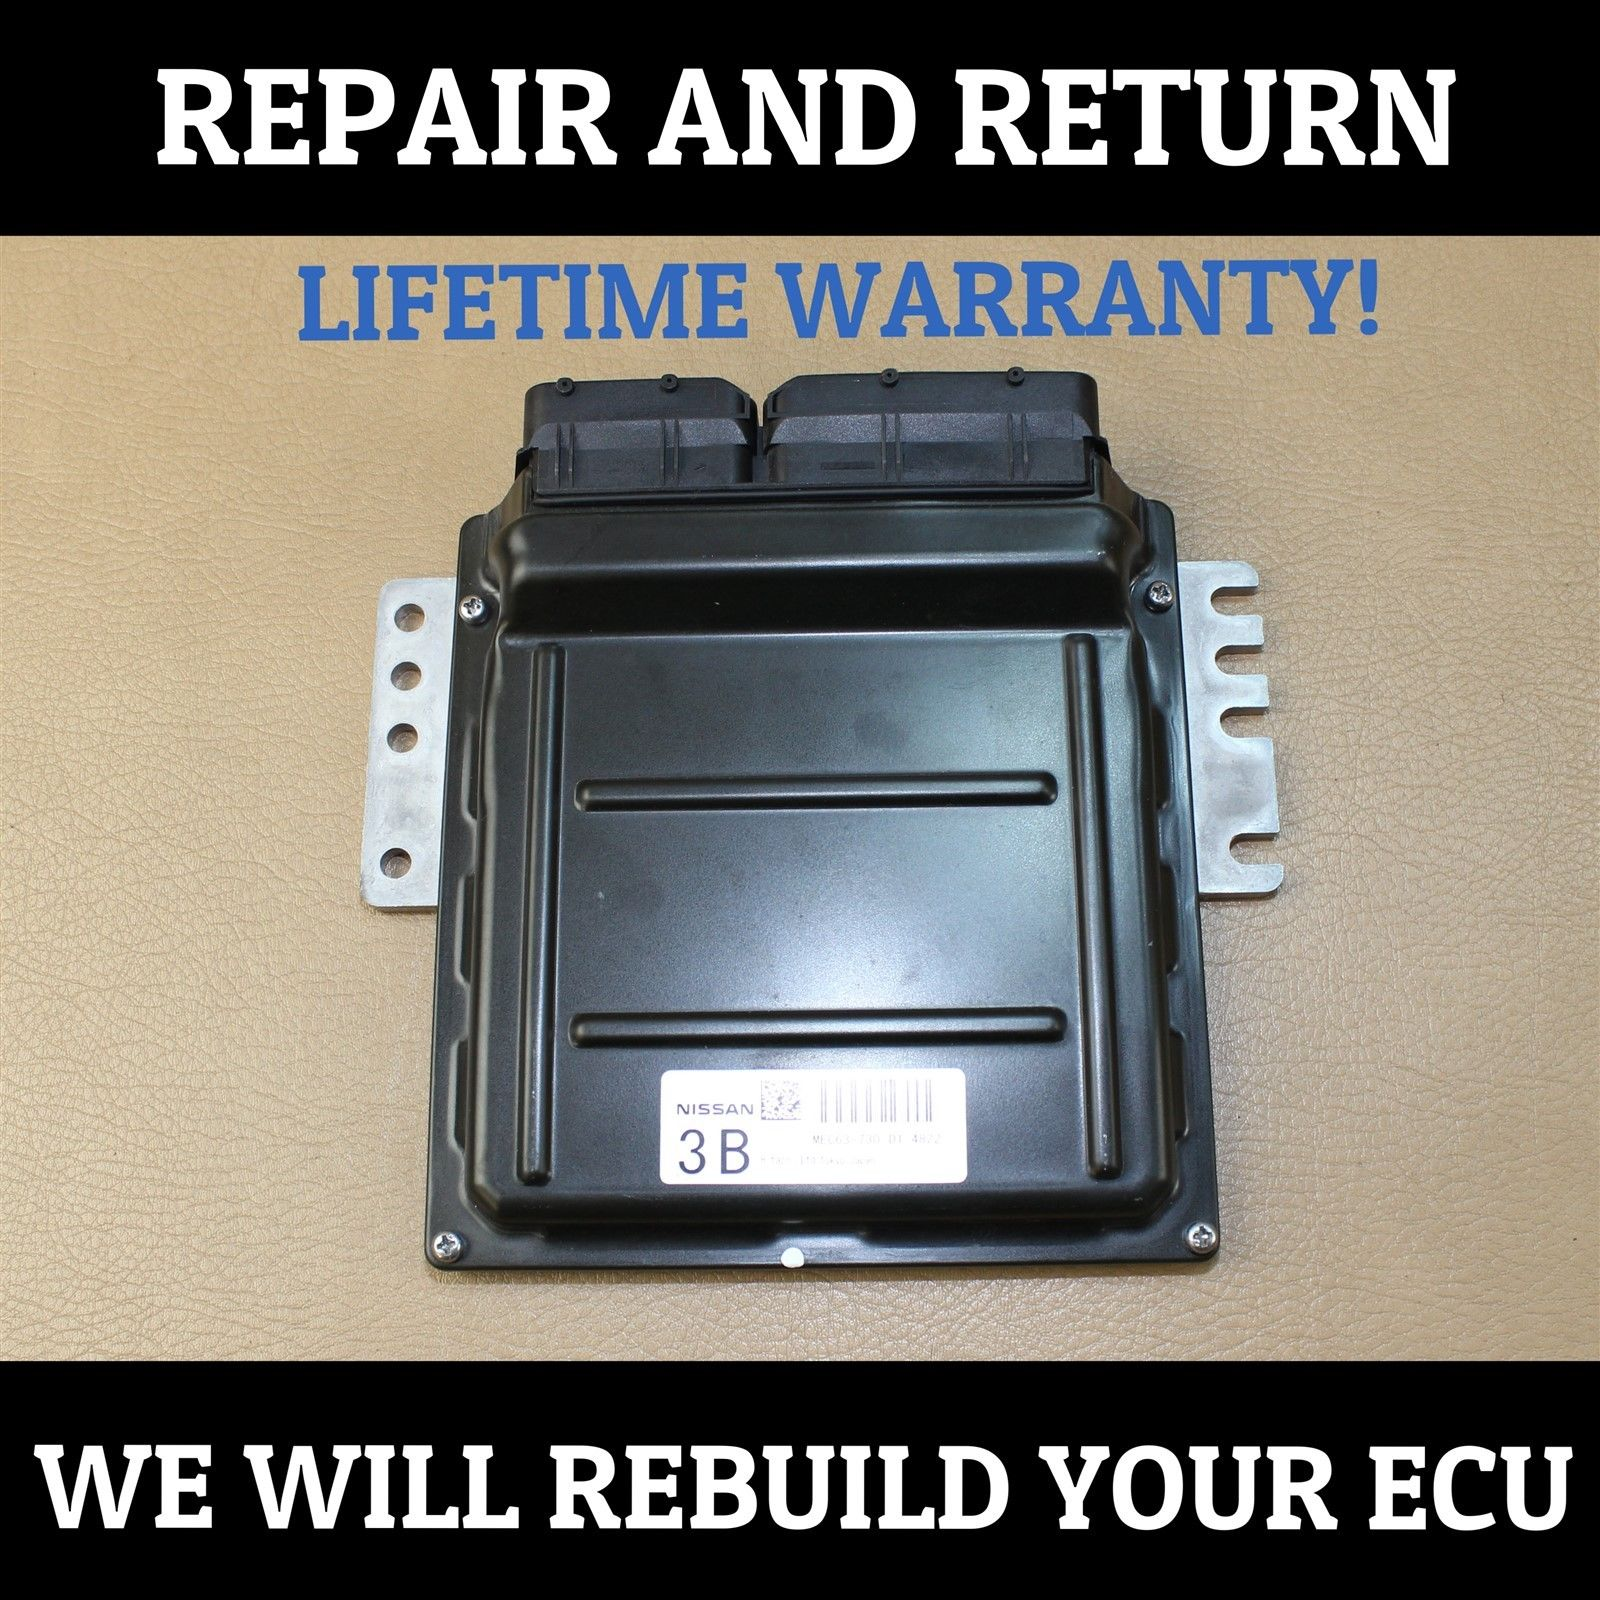 REPAIR SERVICE 05-06 NISSAN ALTIMA 2.5L 3.5L ECU ENGINE ...